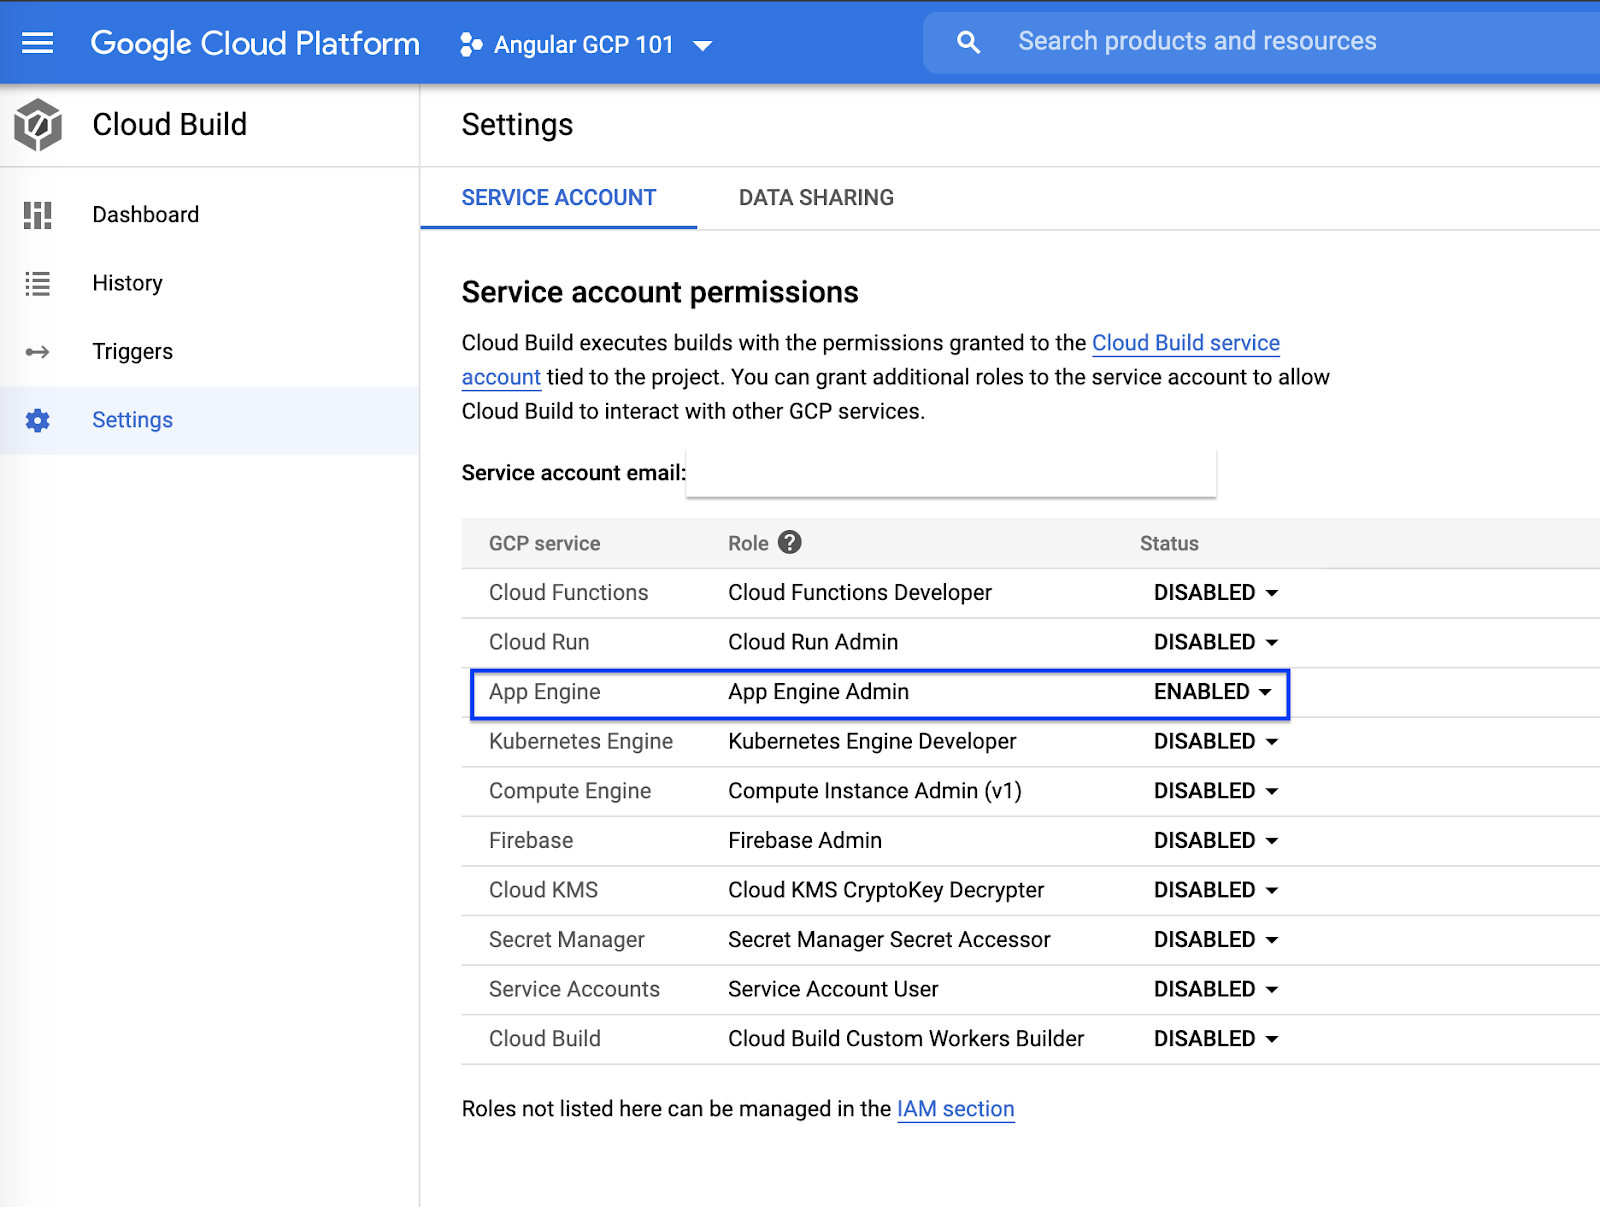 Providing service permissions in App Engine on gcp